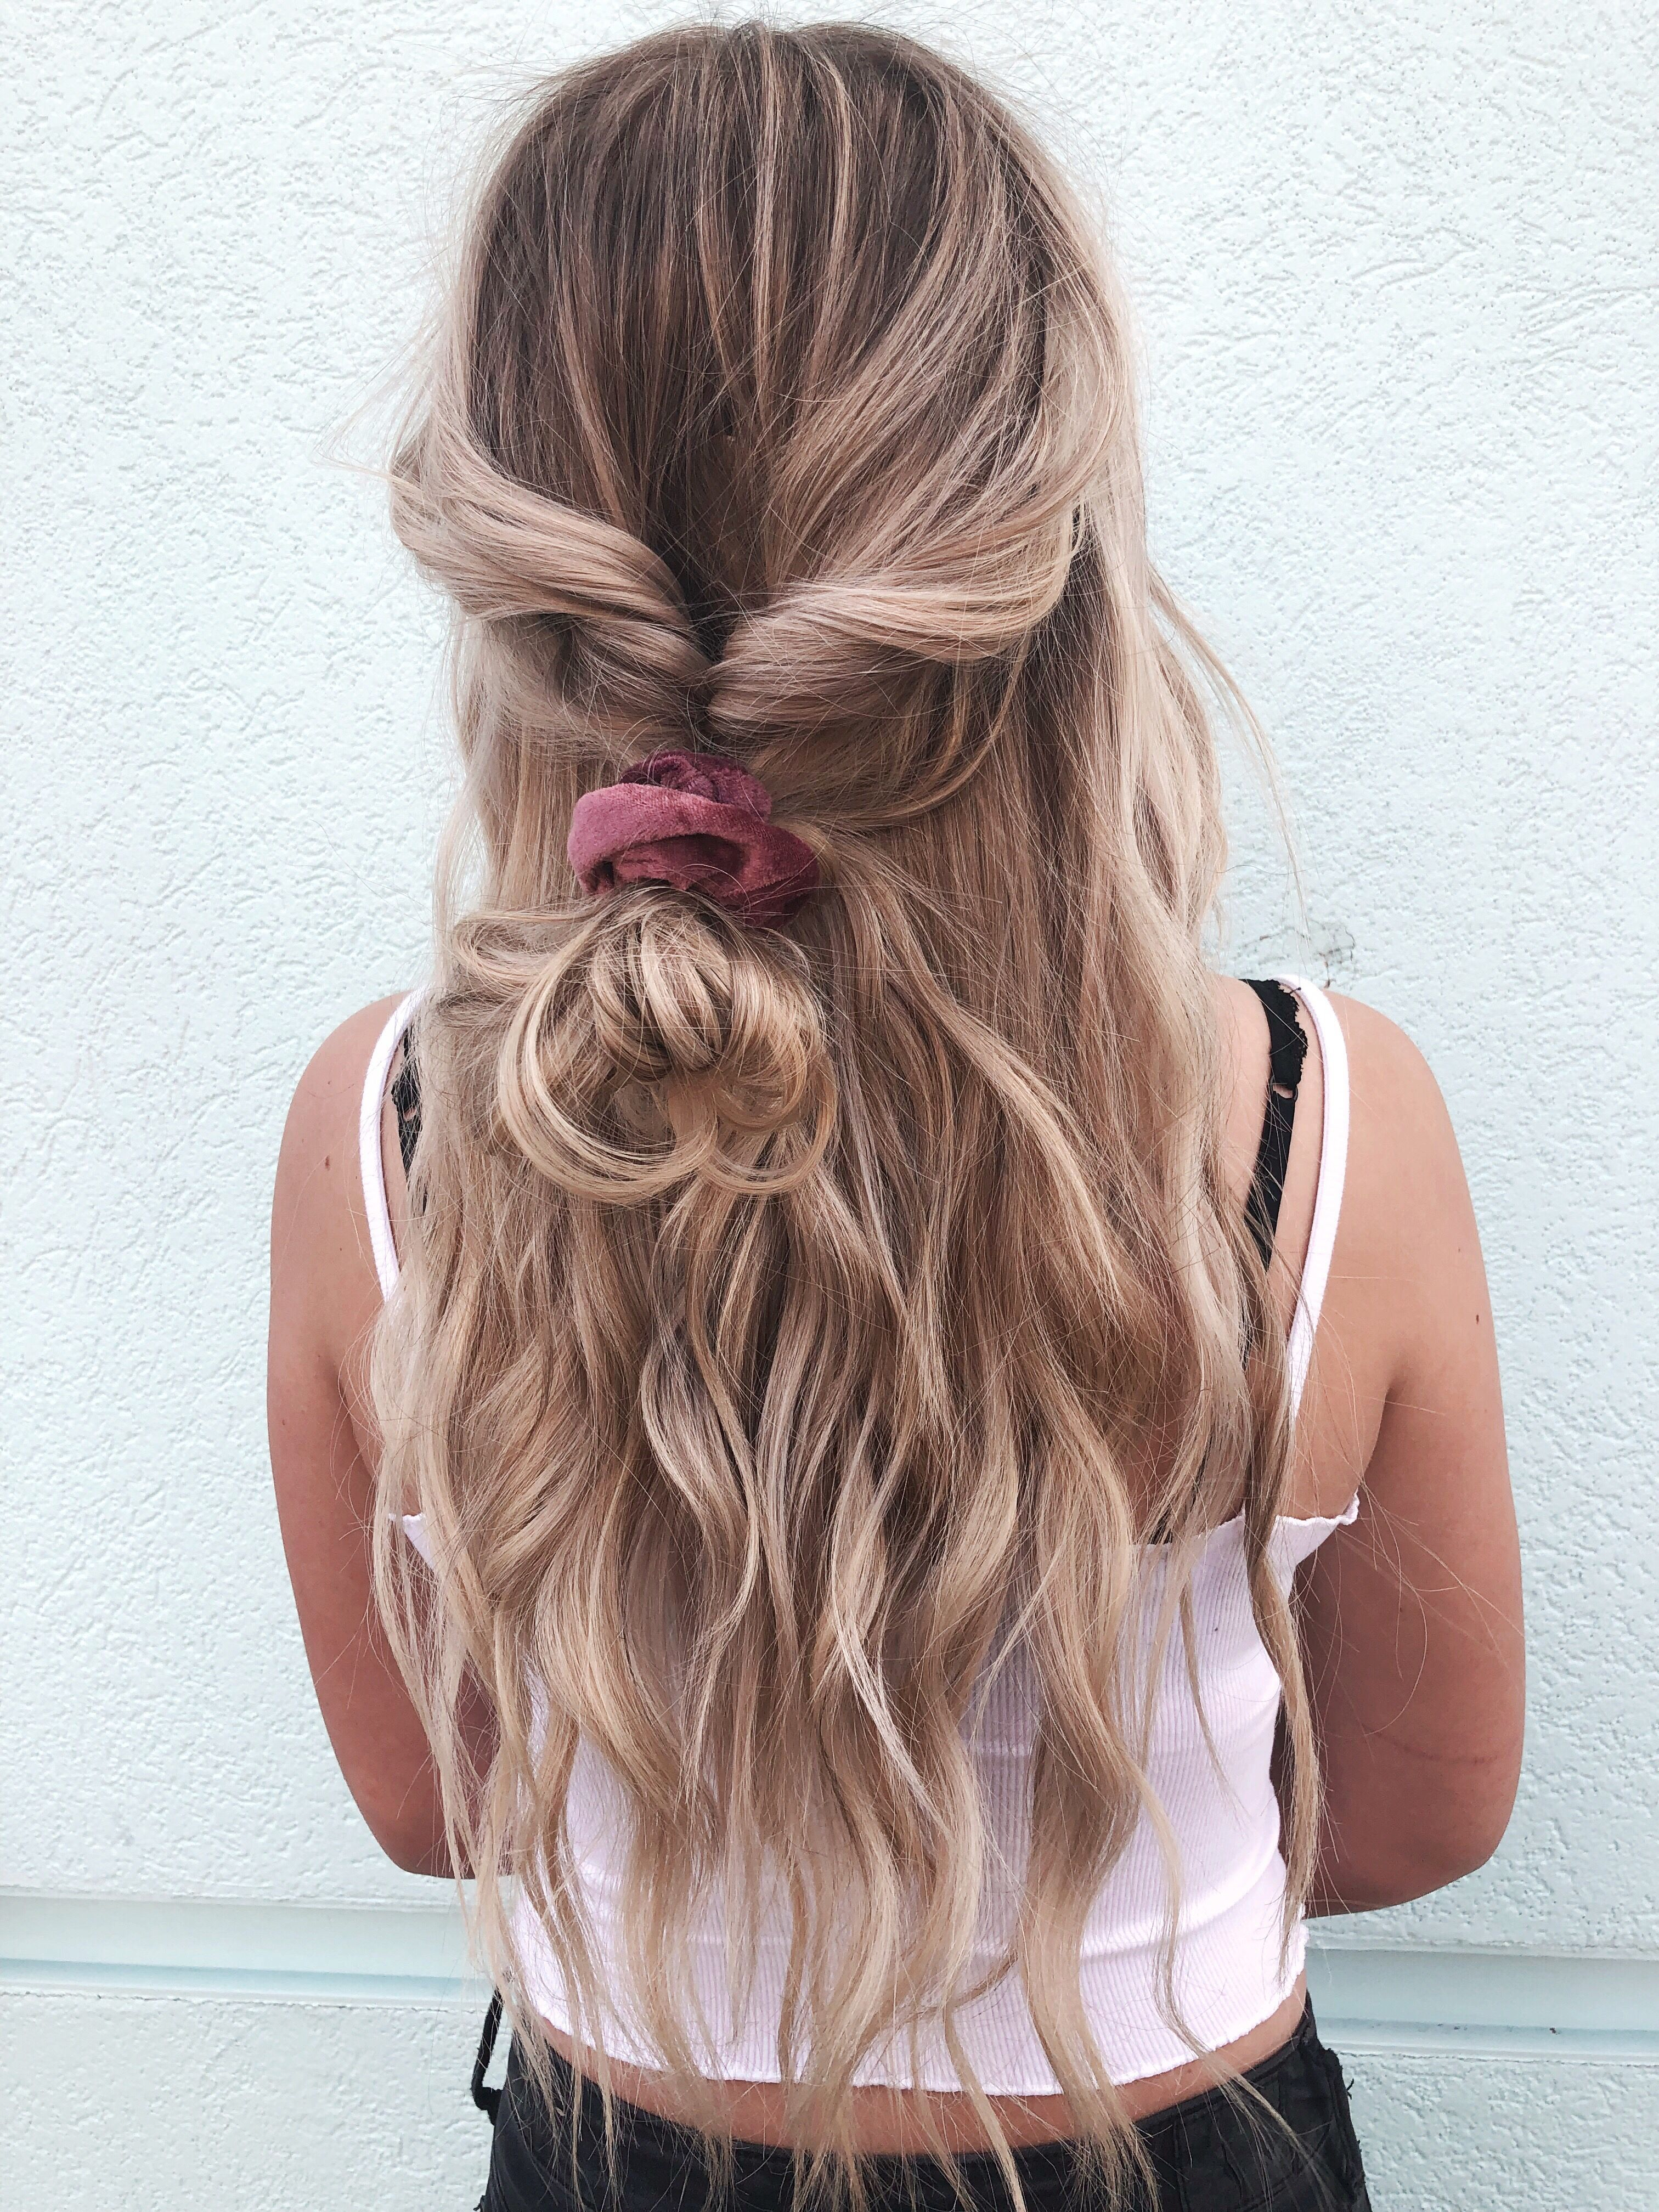 scrunchie hairstyle for long hair | hair 101 in 2019 | long